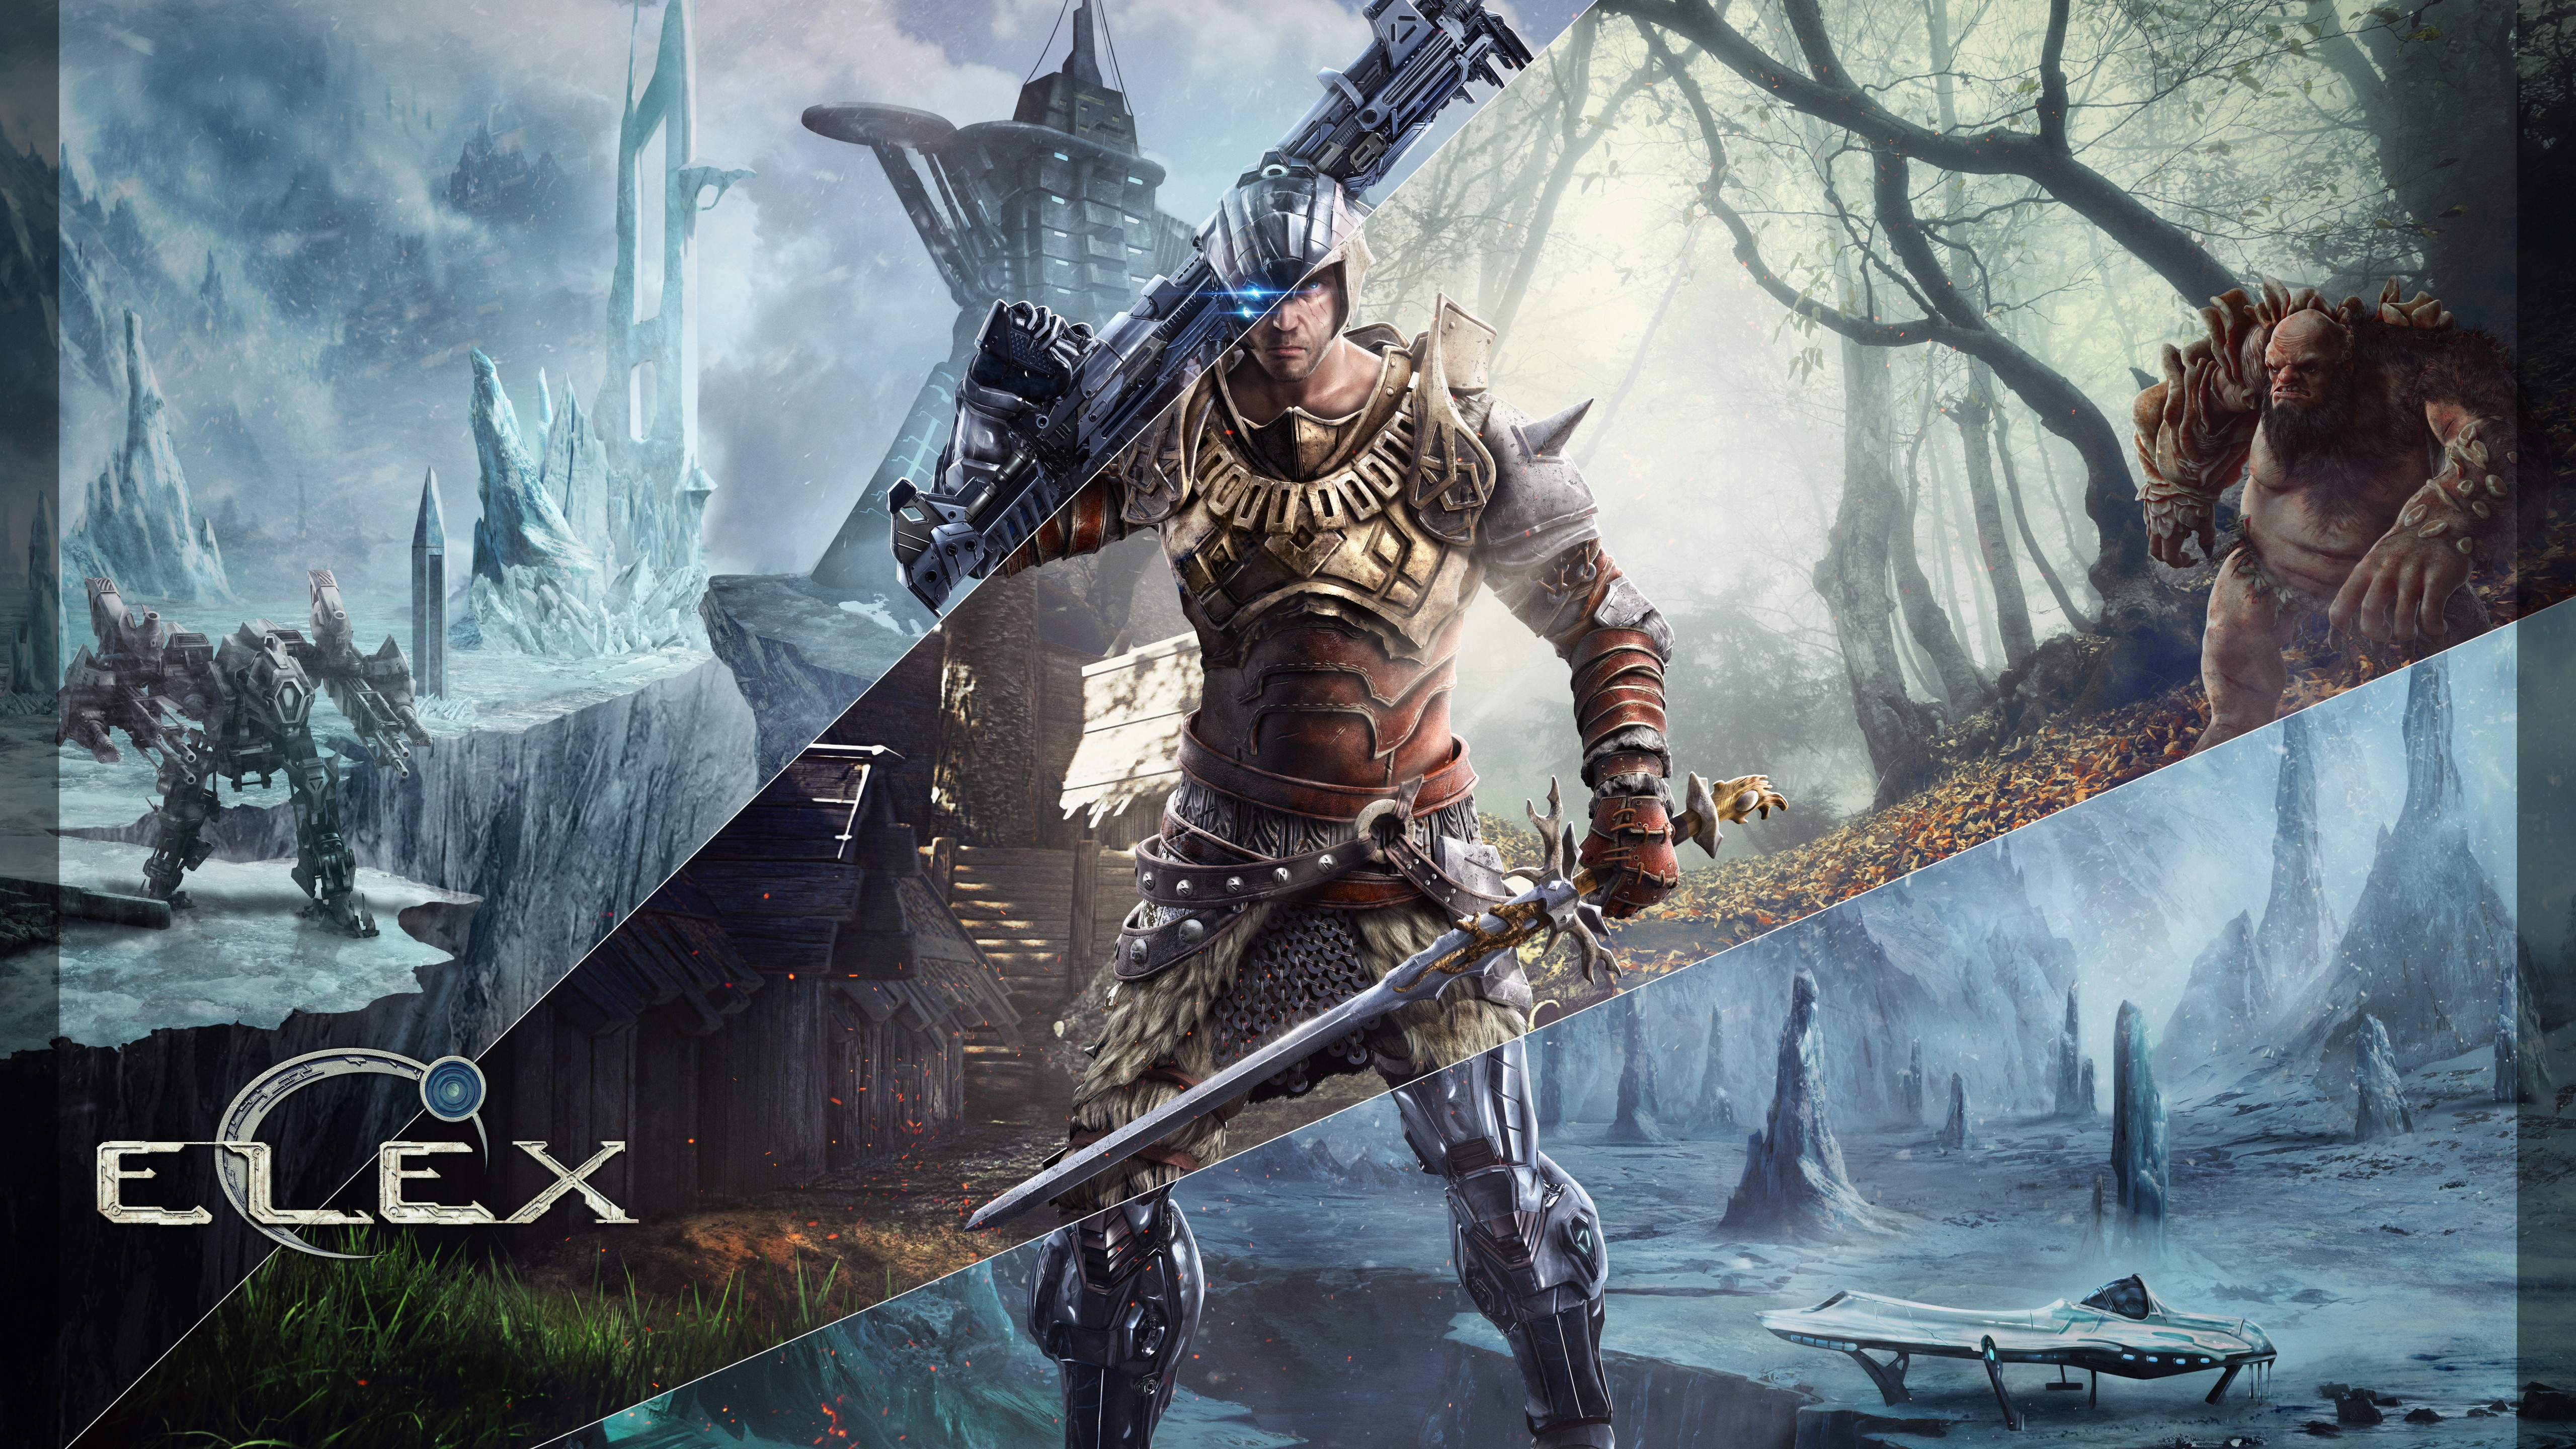 Elex Game 5k HD Games 4k Wallpapers Images Backgrounds Photos